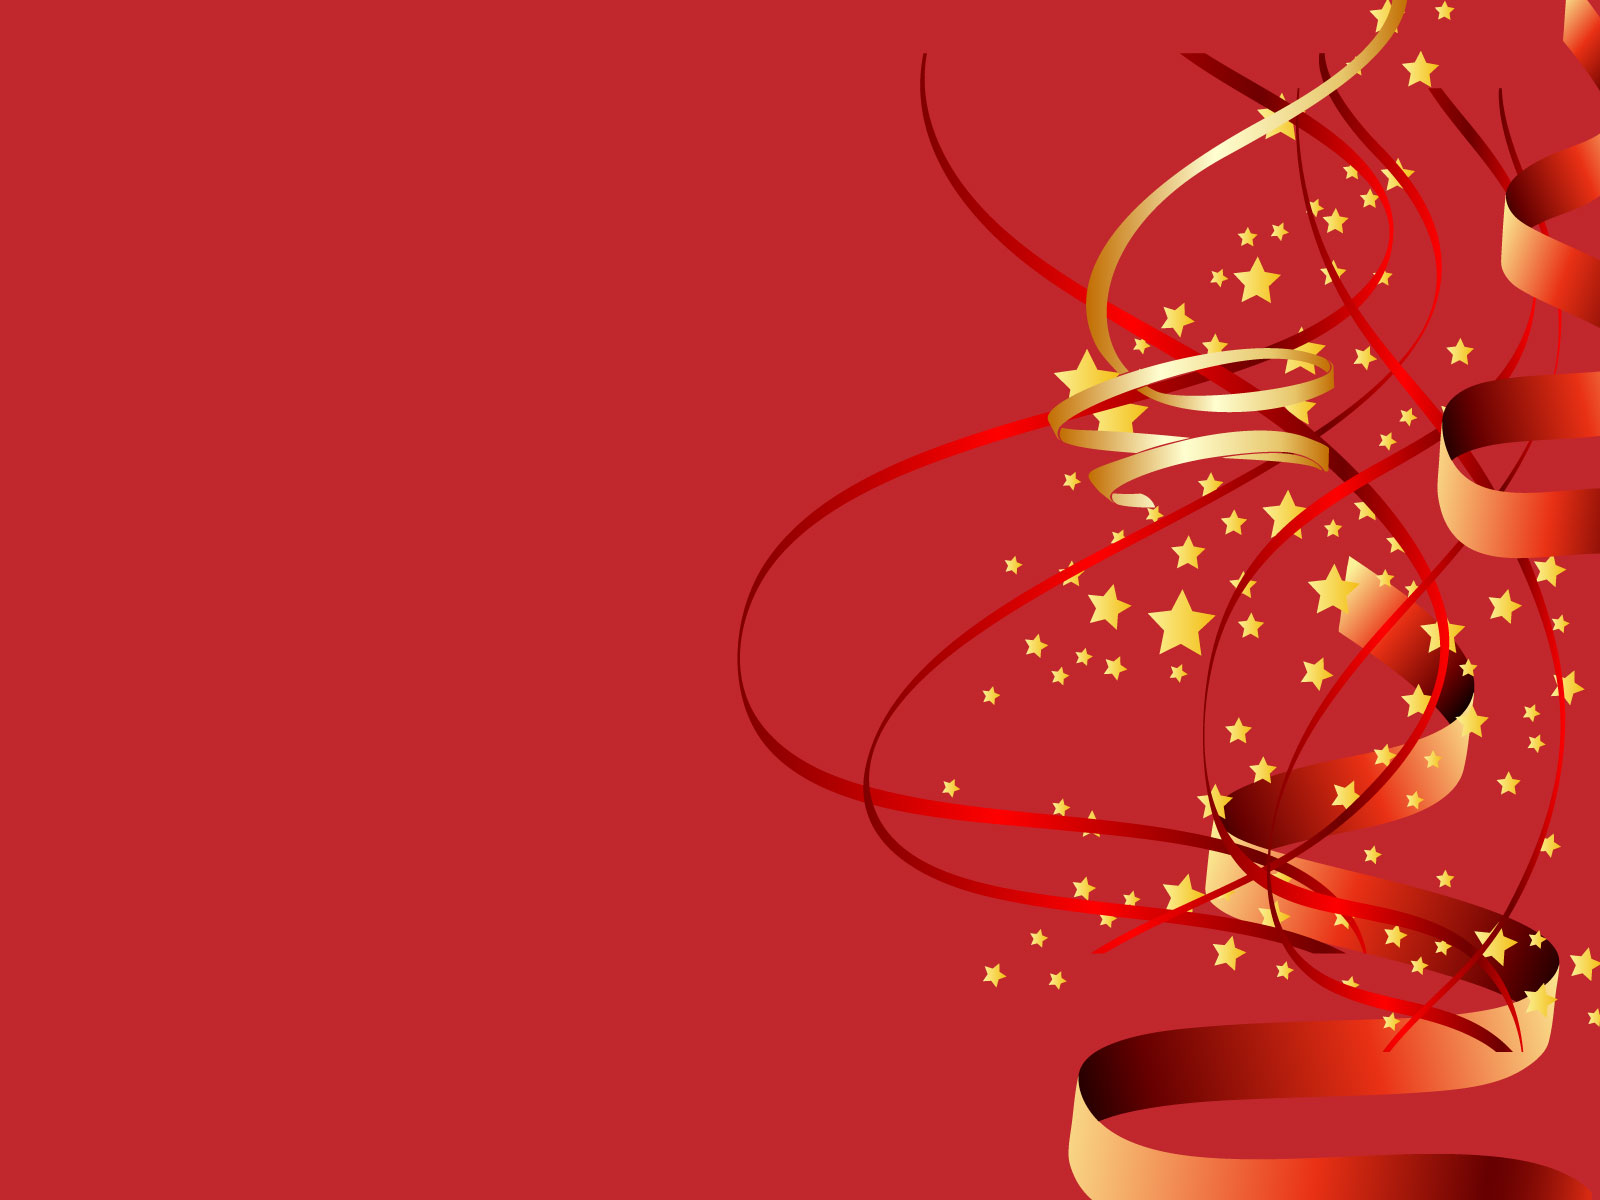 Wallpaper Power Point New Year Wishes Template 1600x1200 Wallpaper Teahub Io